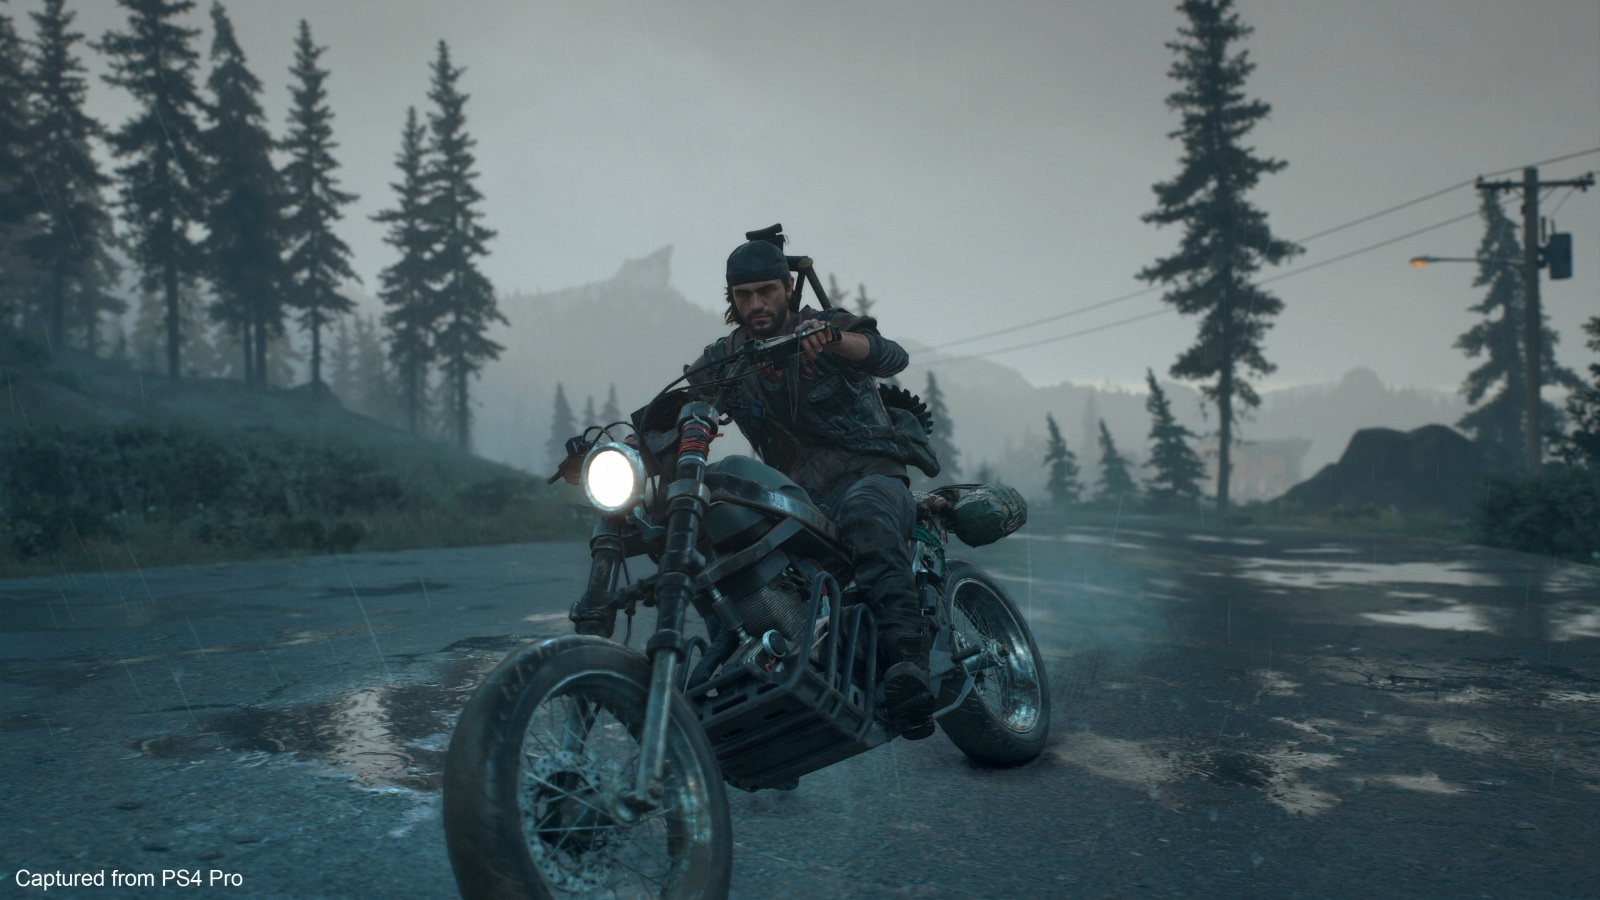 Days Gone; screenshot: Deacon na motorce